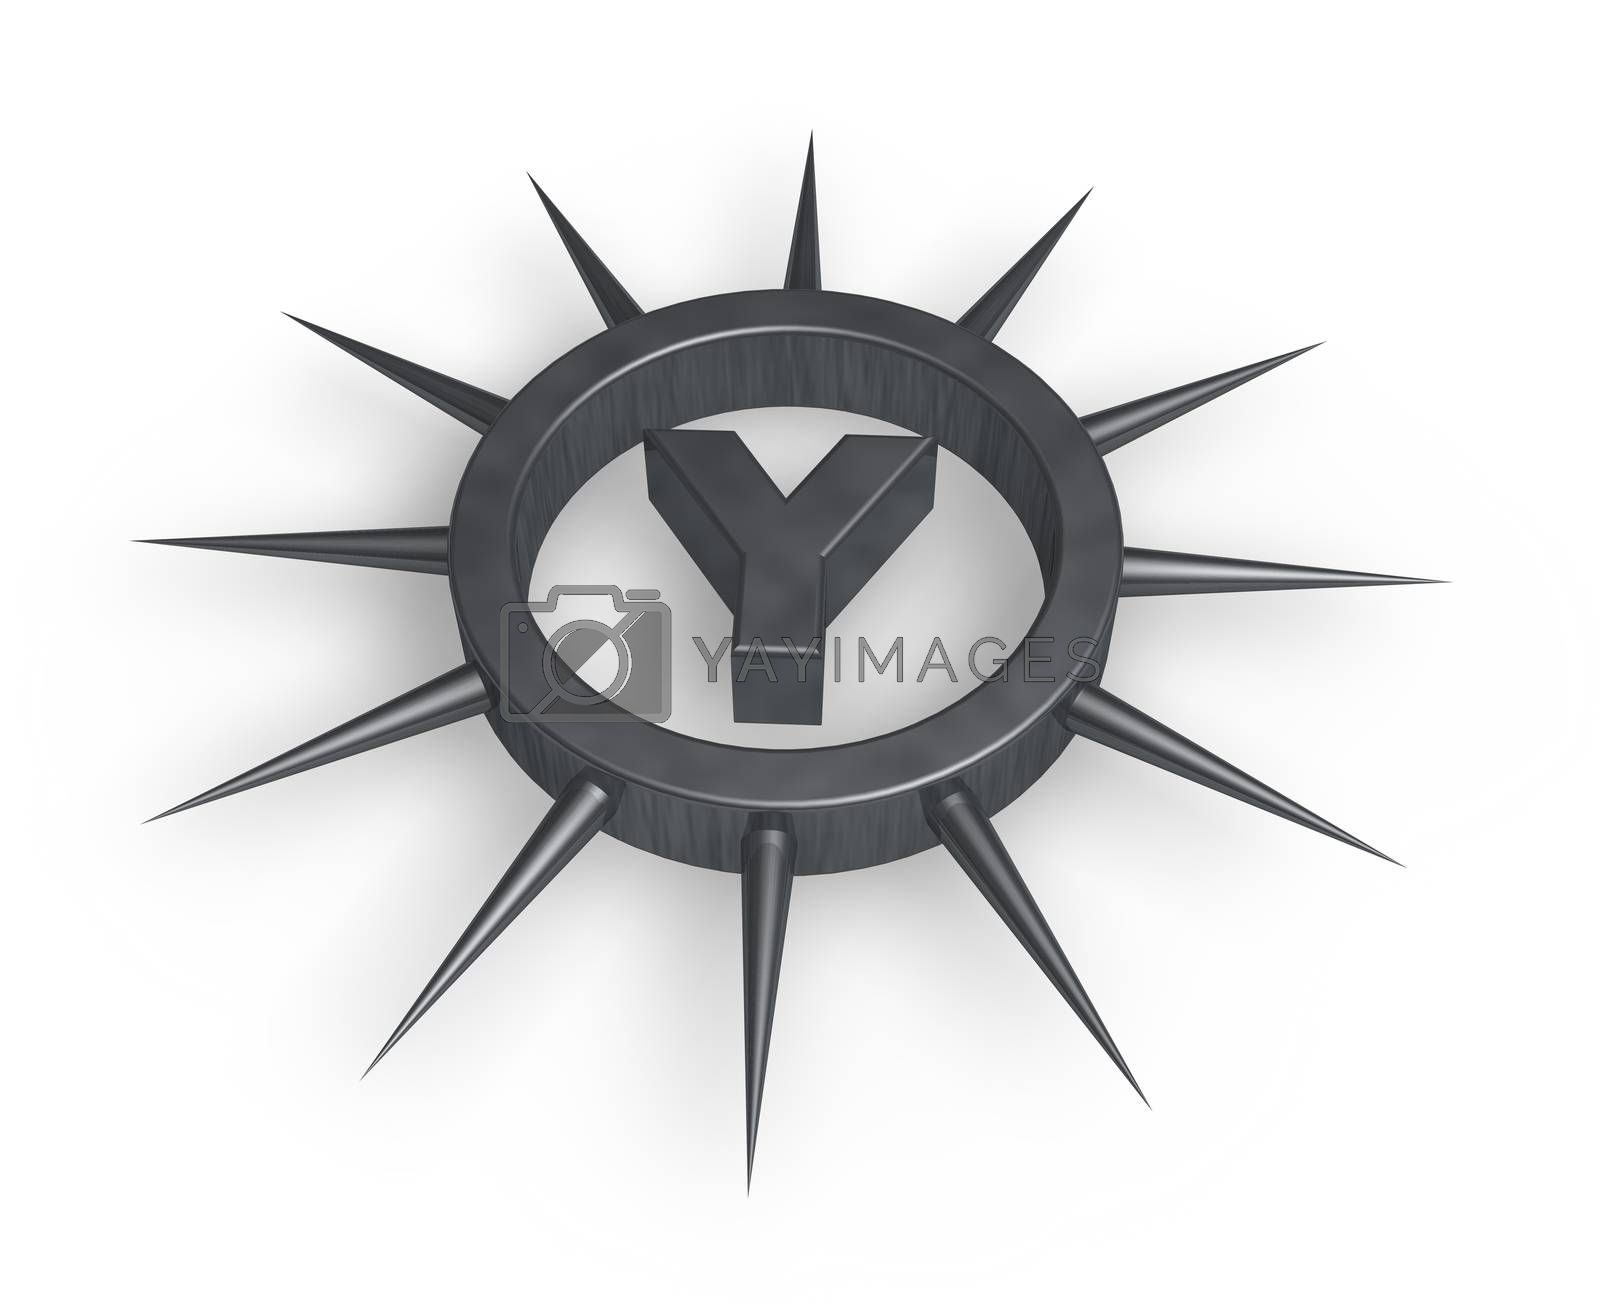 spike ring with the letter y inside - 3d illustration